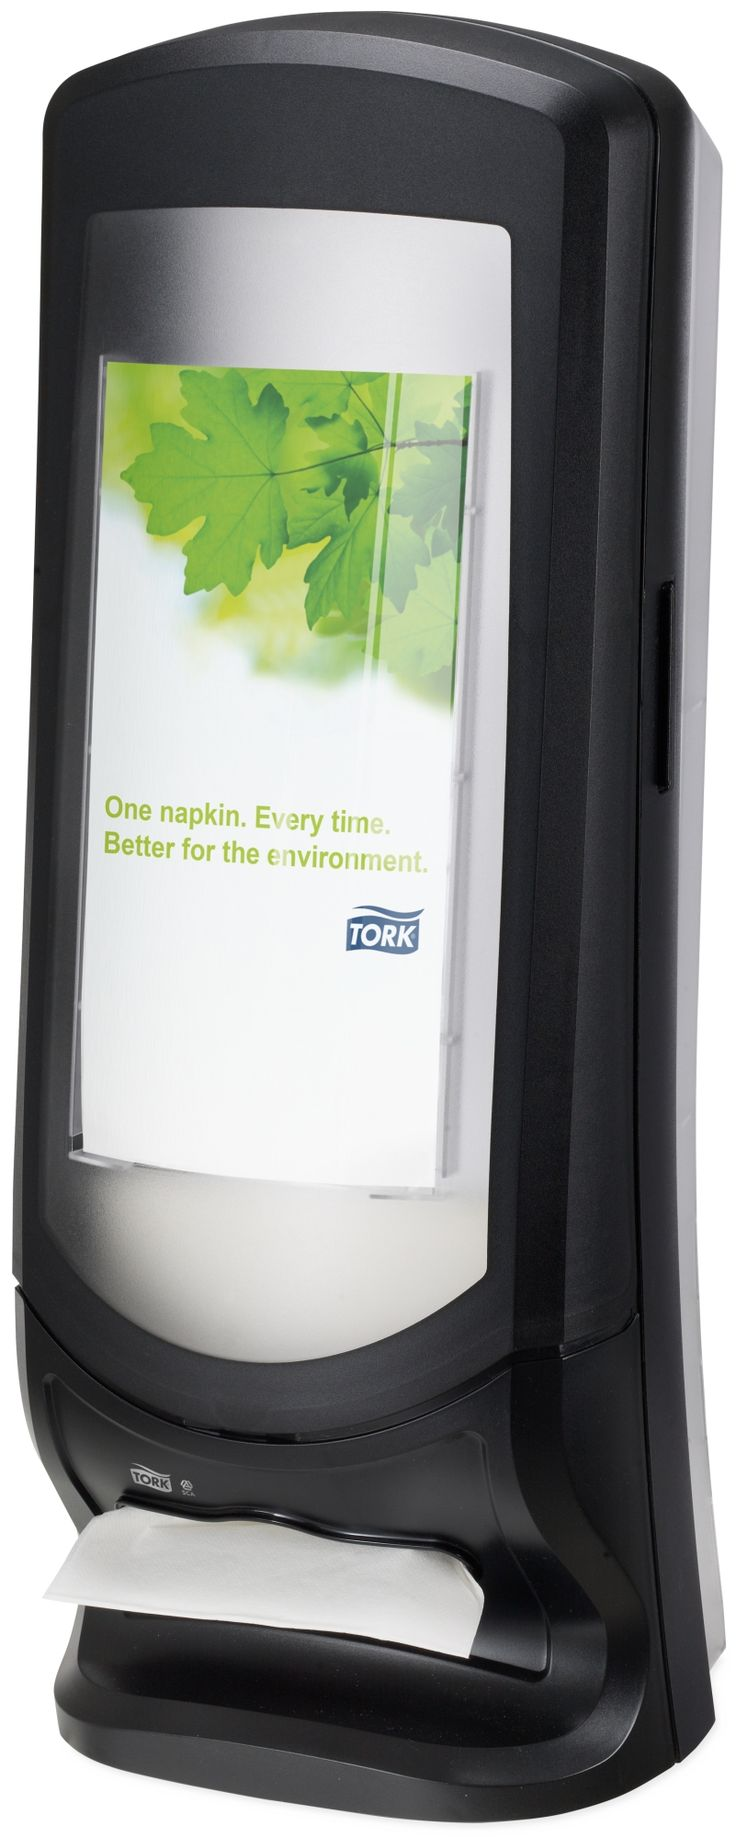 Tork Xpressnap® Stand Napkin Dispenser: We guarantee Tork Xpressnap® napkin dispensing system will reduce napkin usage by at least 25% compared with traditional dispensers, helping you to reduce napkin consumption and waste. (System: N4 - Interfolded napkin system; Material: Plastic; Height: 622mm, Width: 235 mm, Depth: 235 mm; Color: Black) Get more information about this product at: http://bimobject.com/en/sca-eu/product/272211/sca-tork-eu